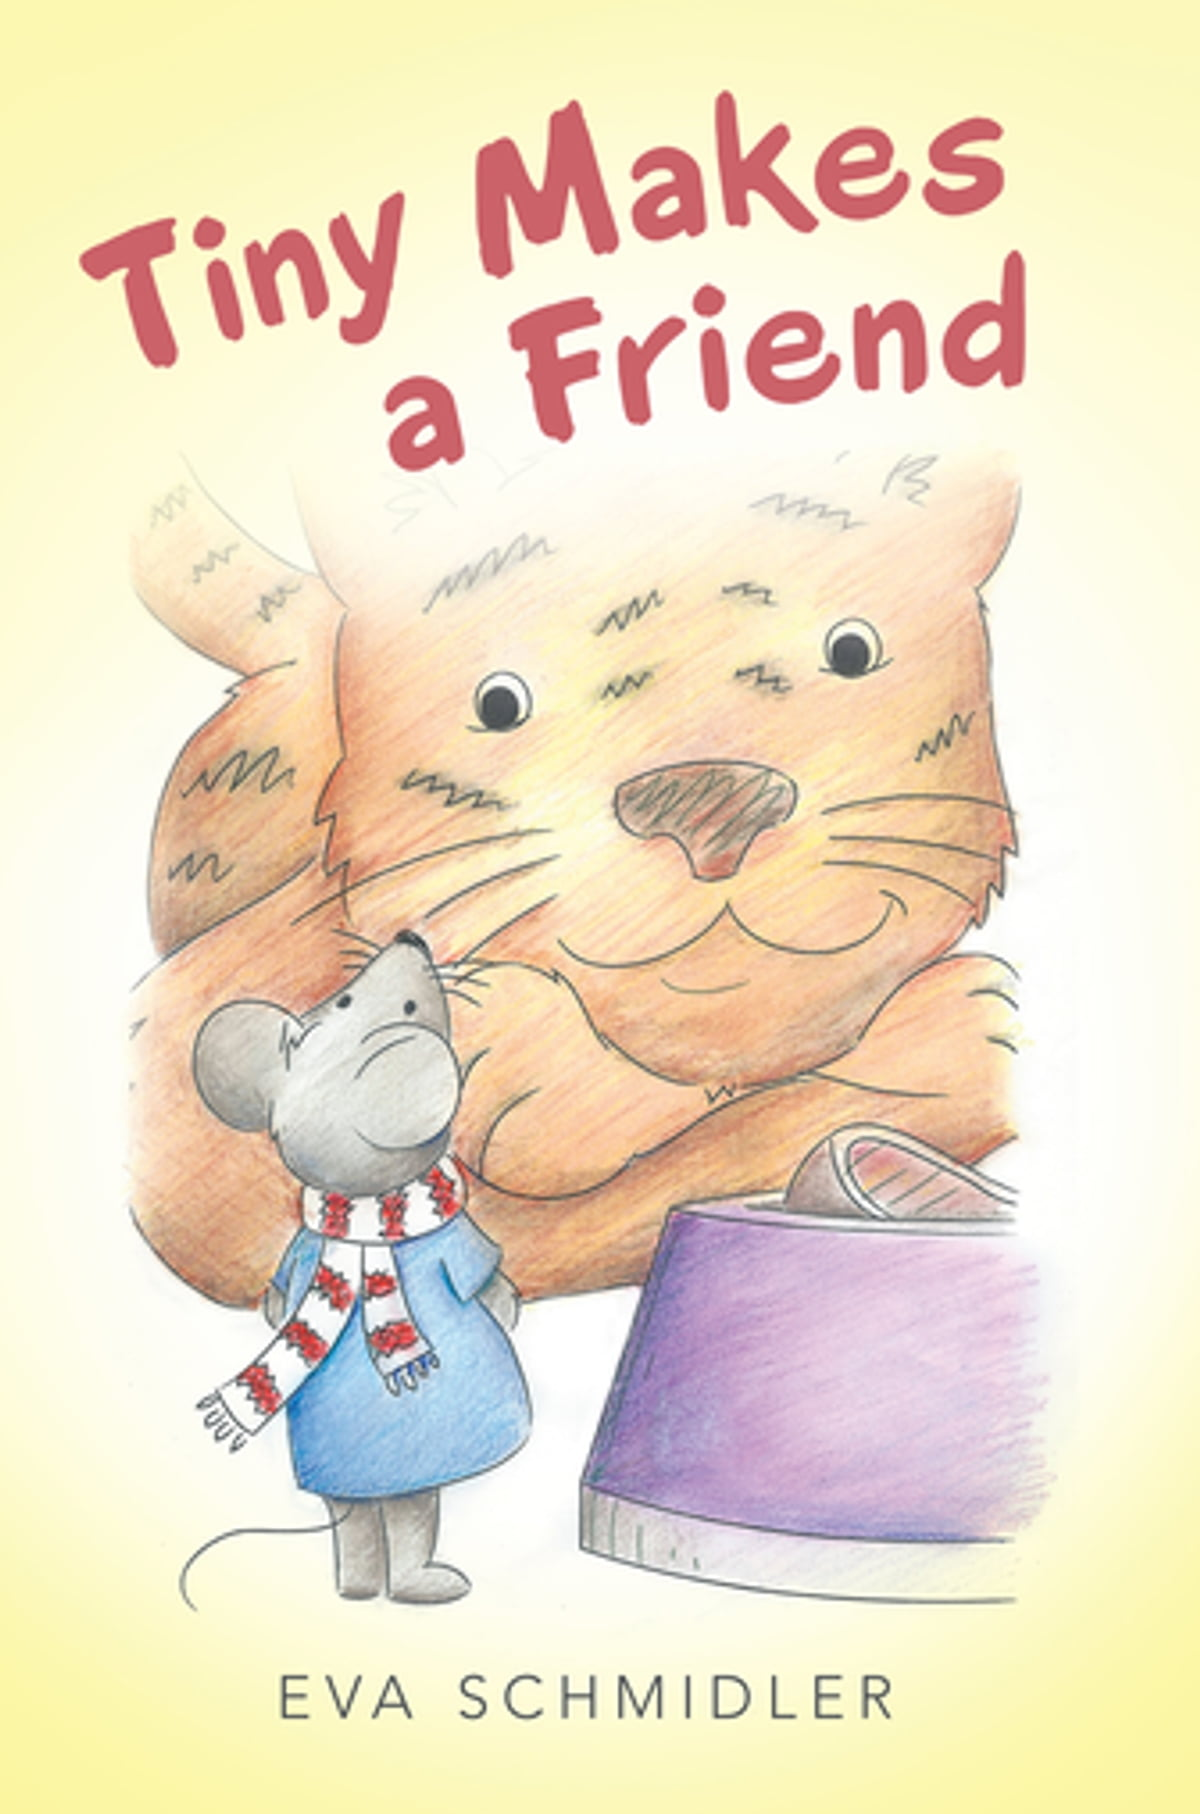 Tiny Makes a Friend eBook by Eva Schmidler - 9781480830592 | Rakuten Kobo